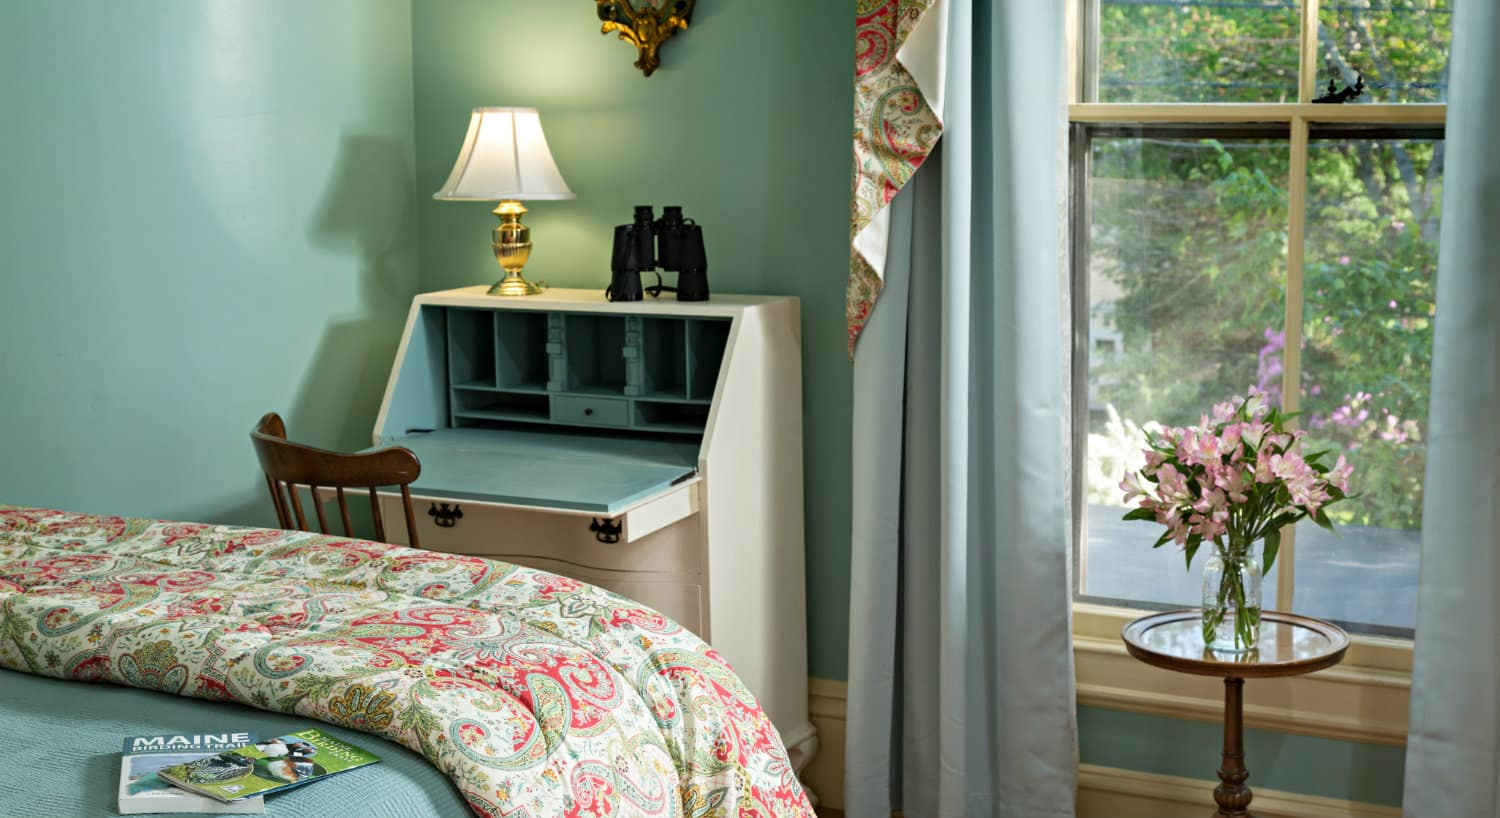 Guest room with pale teal walls holds a bed with a floral throw and a white secretary next to a large window.